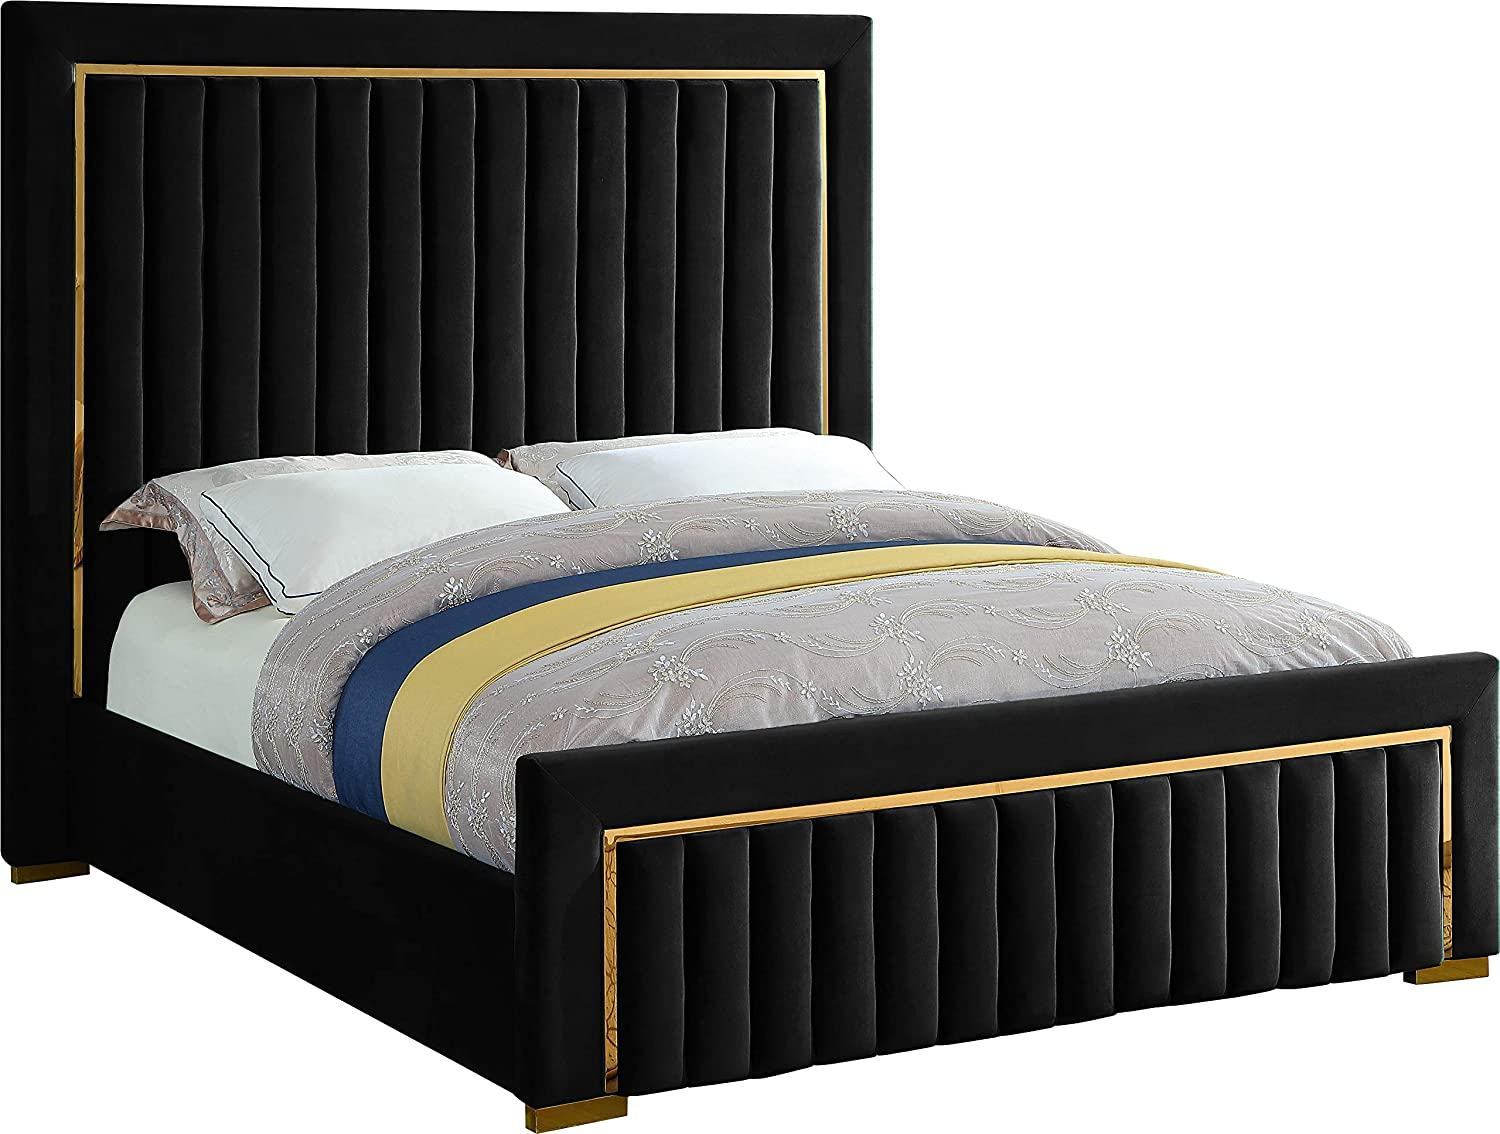 Meridian Furniture Dolce Collection Modern | Contemporary Velvet Upholstered Bed with Luxurious Channel Tufting and Gold Metal Trim/Legs, Queen, Black